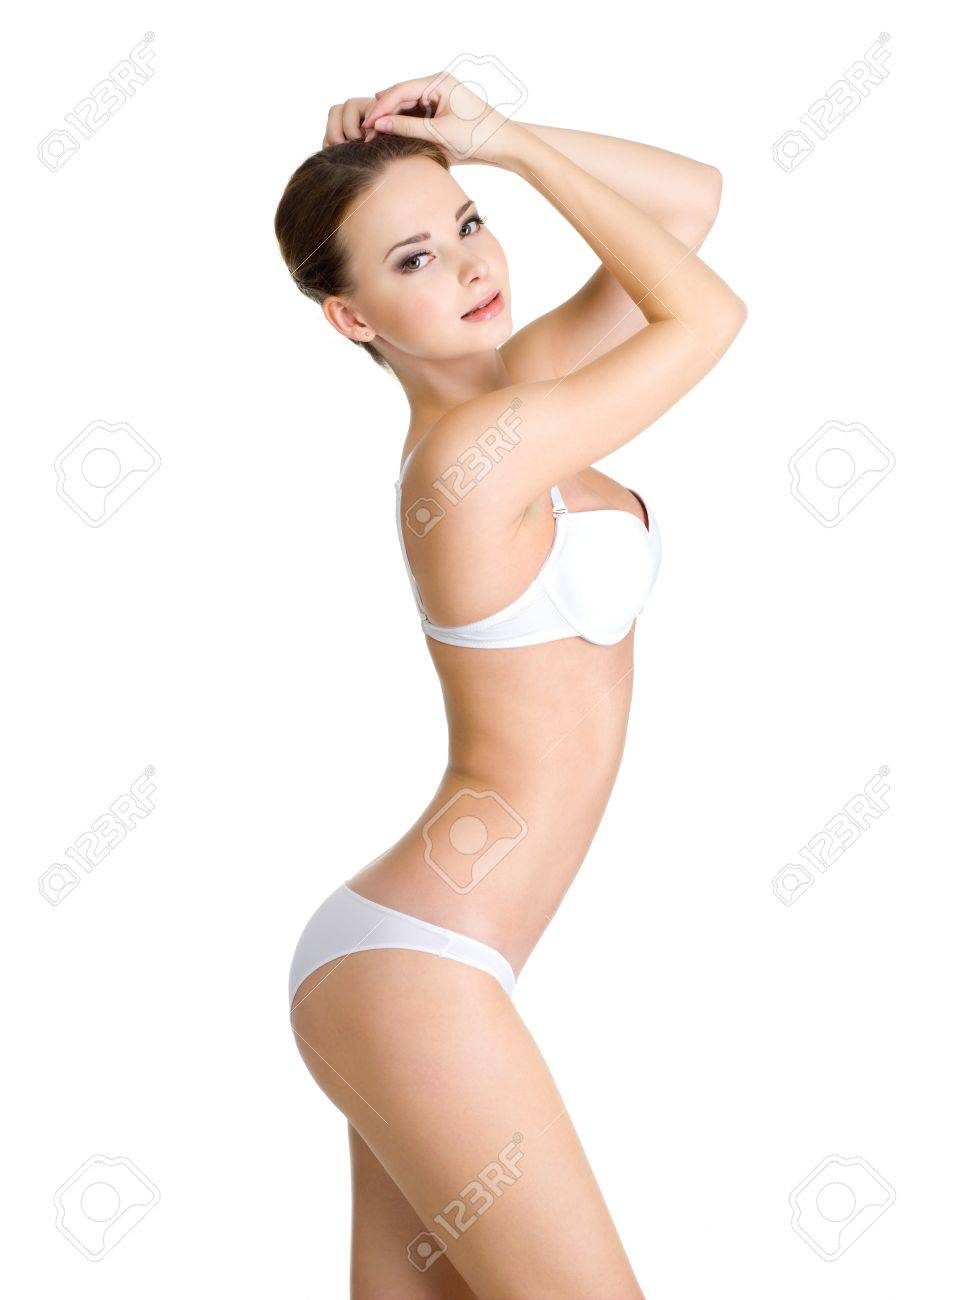 Beautiful female body in white underwear isolated on white background Stock Photo - 11038776